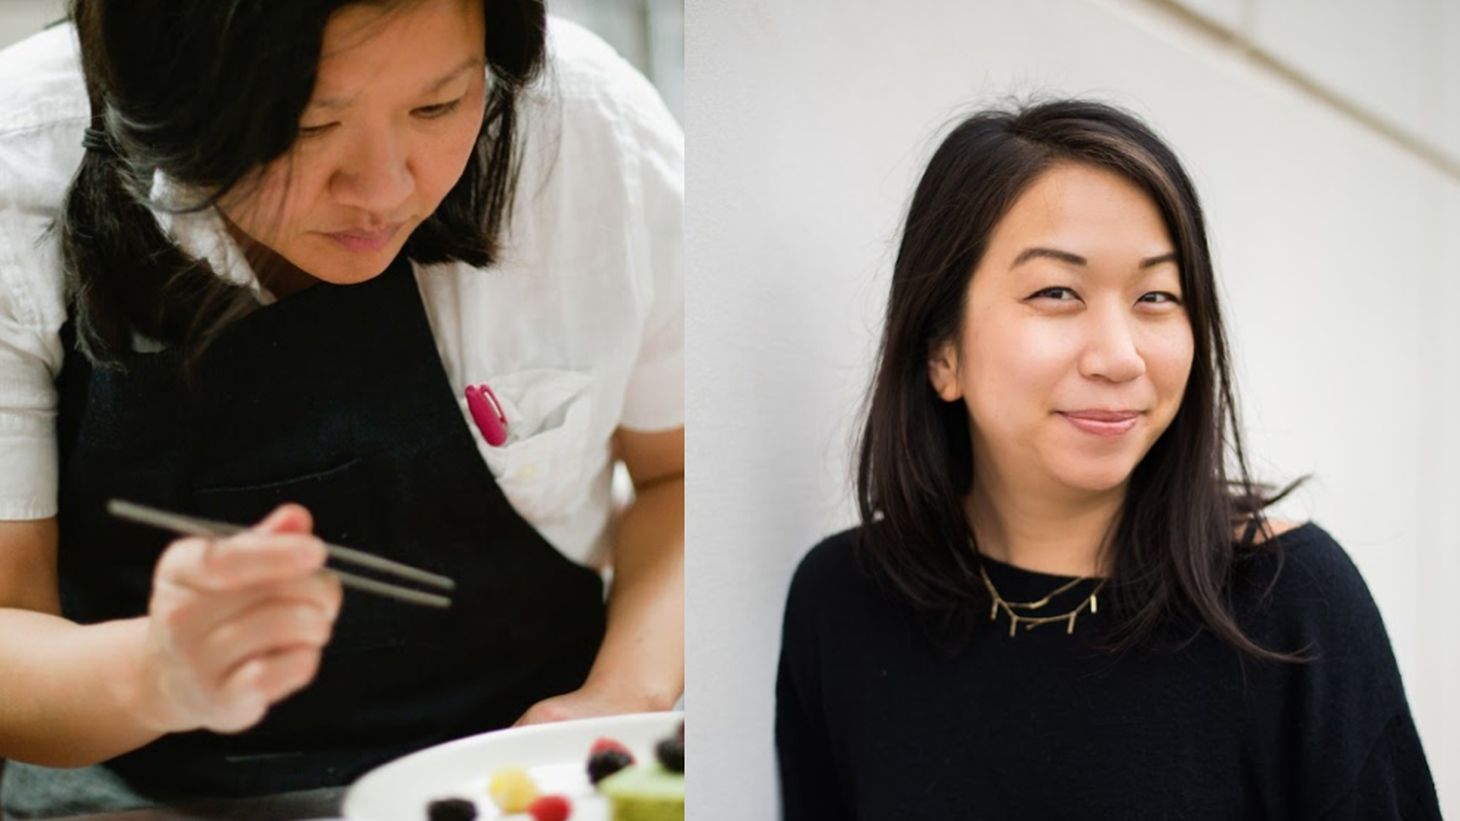 """What I make sure I do in all my food reporting is just address this idea of a monolith and use my privilege to stress we are all really diverse,"" says food writer Esther Tseng (right). She is joined by Chef Minh Phan of PHENAKITE and porridge + puffs to discuss visibility, service, and the idea of authenticity."